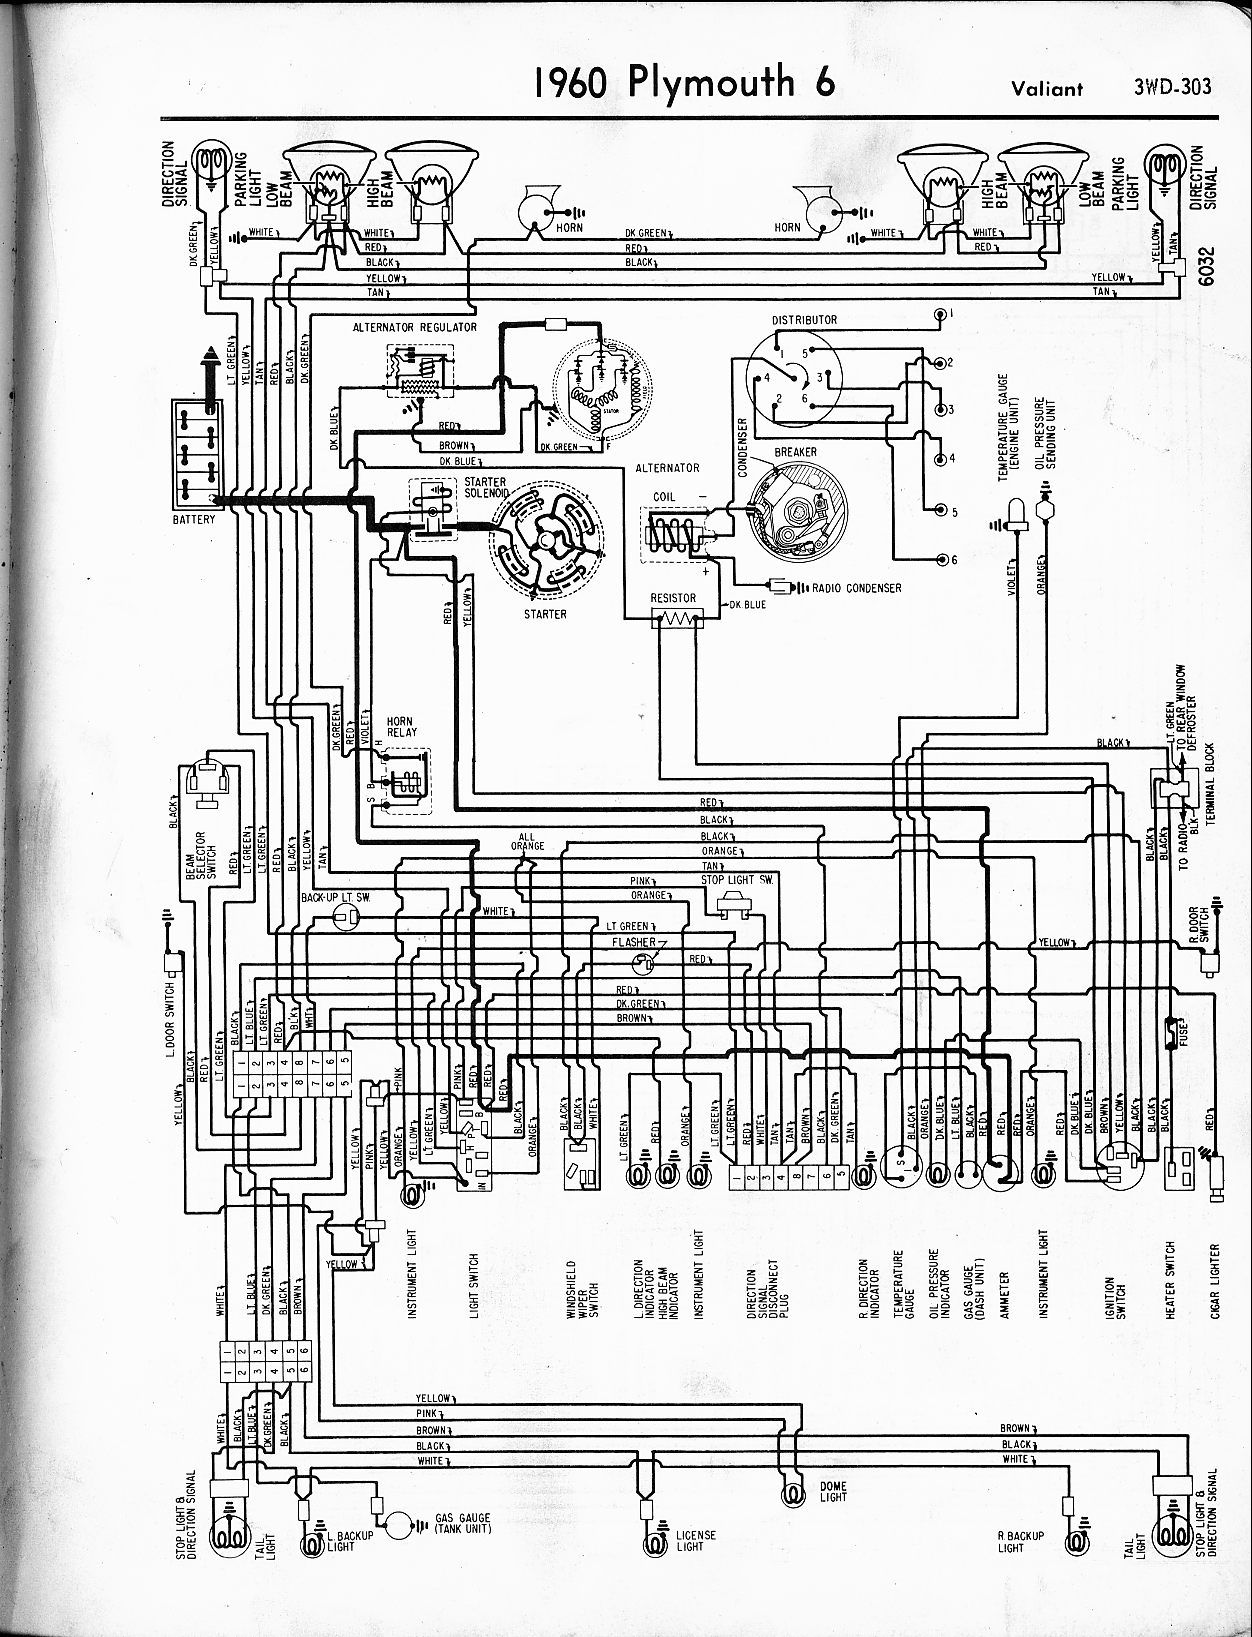 MWire5765 303 1956 1965 plymouth wiring the old car manual project 64 valiant wiring diagram at bayanpartner.co